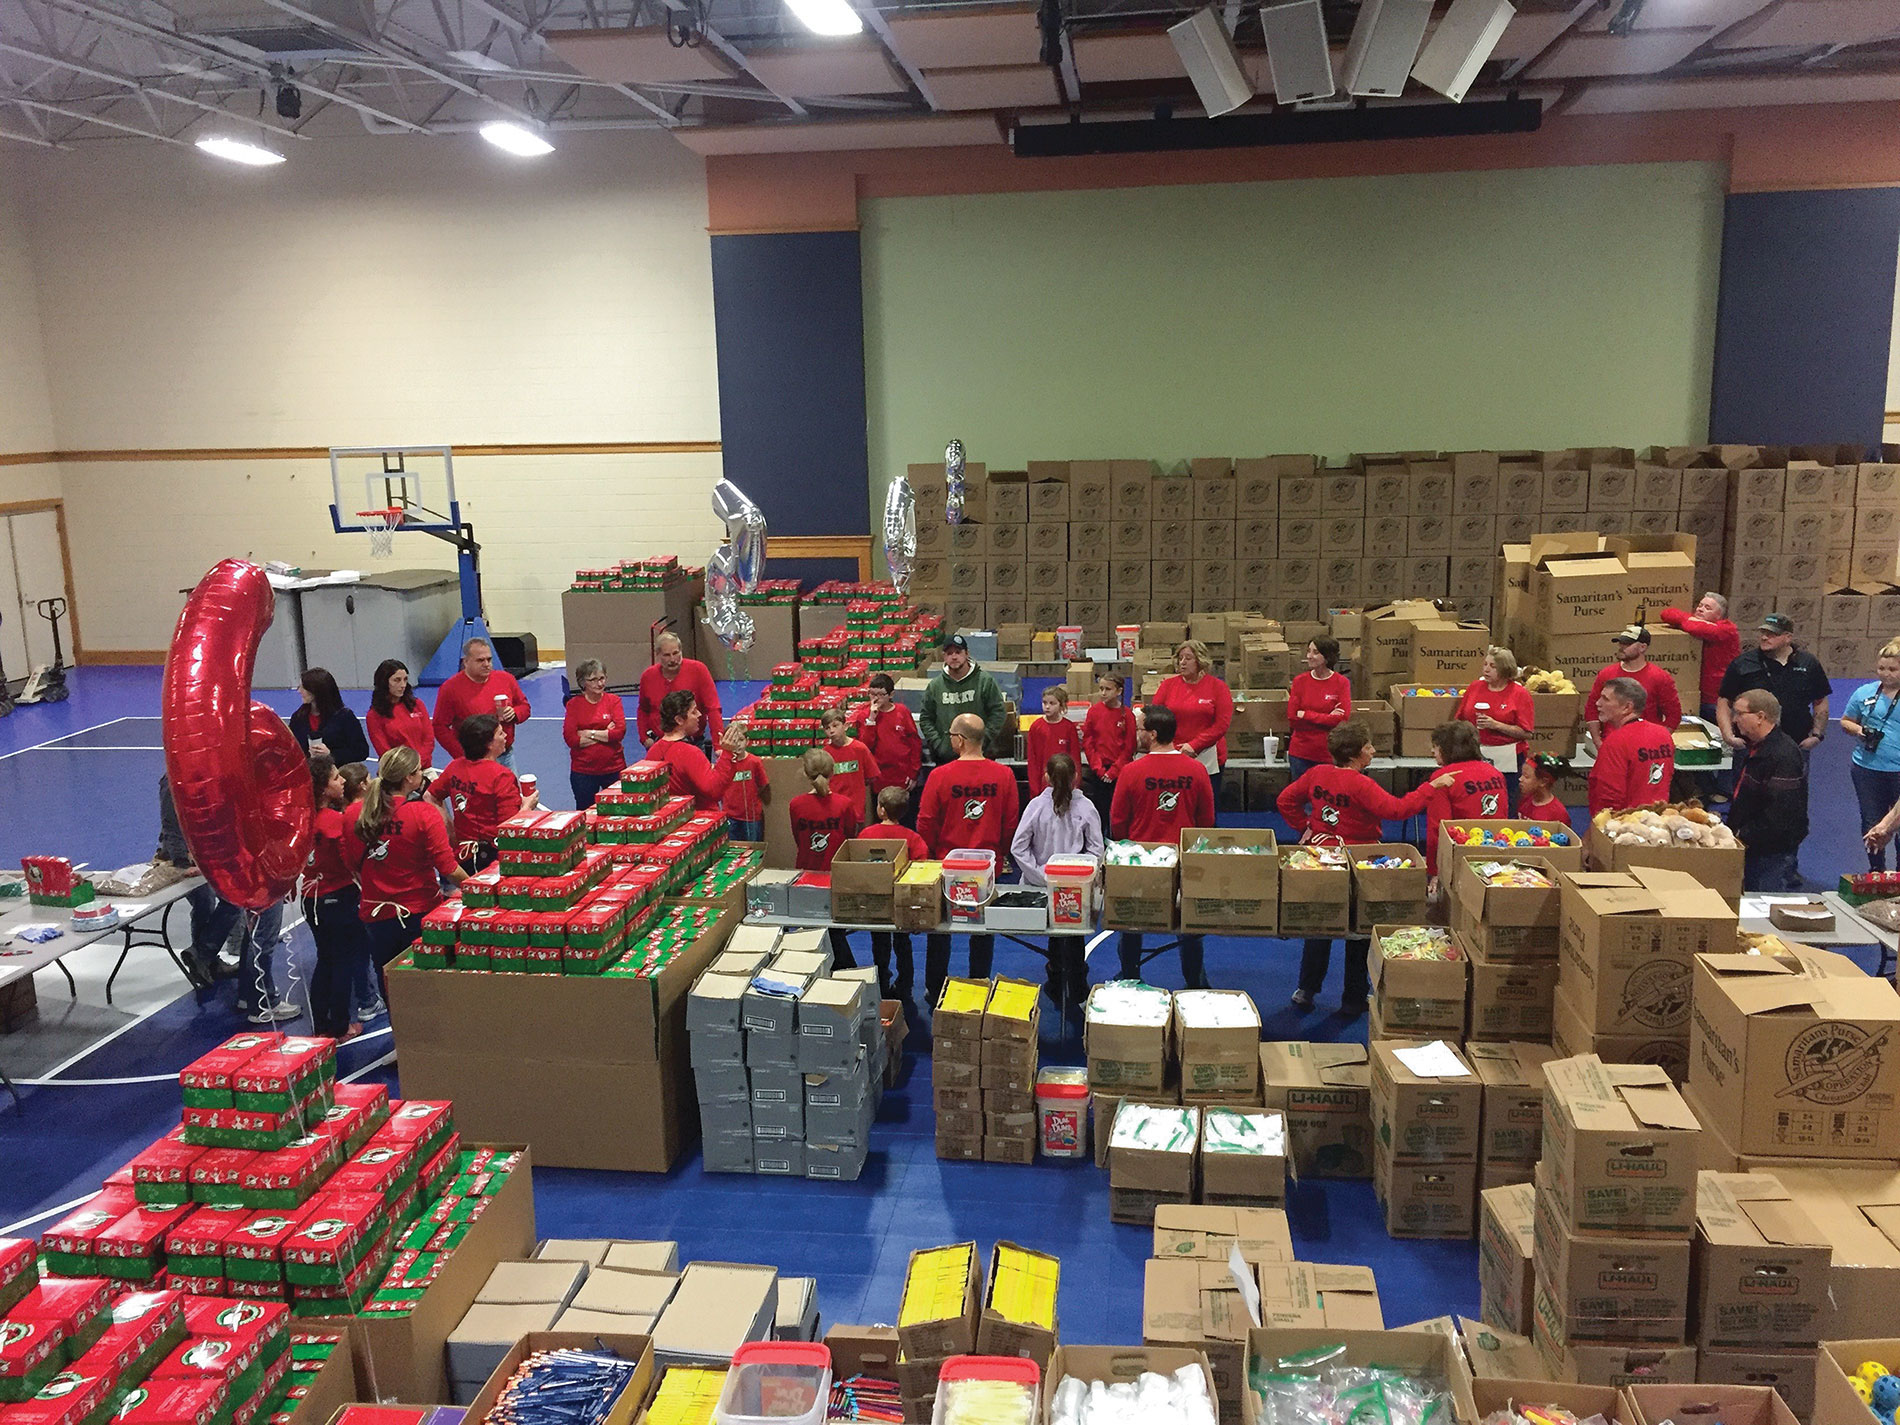 The Lighthouse Electric team recently prepared more than 10,000 gift-filled shoeboxes for children in need worldwide through Operation Christmas Child. Photo Credit: Lighthouse Electric